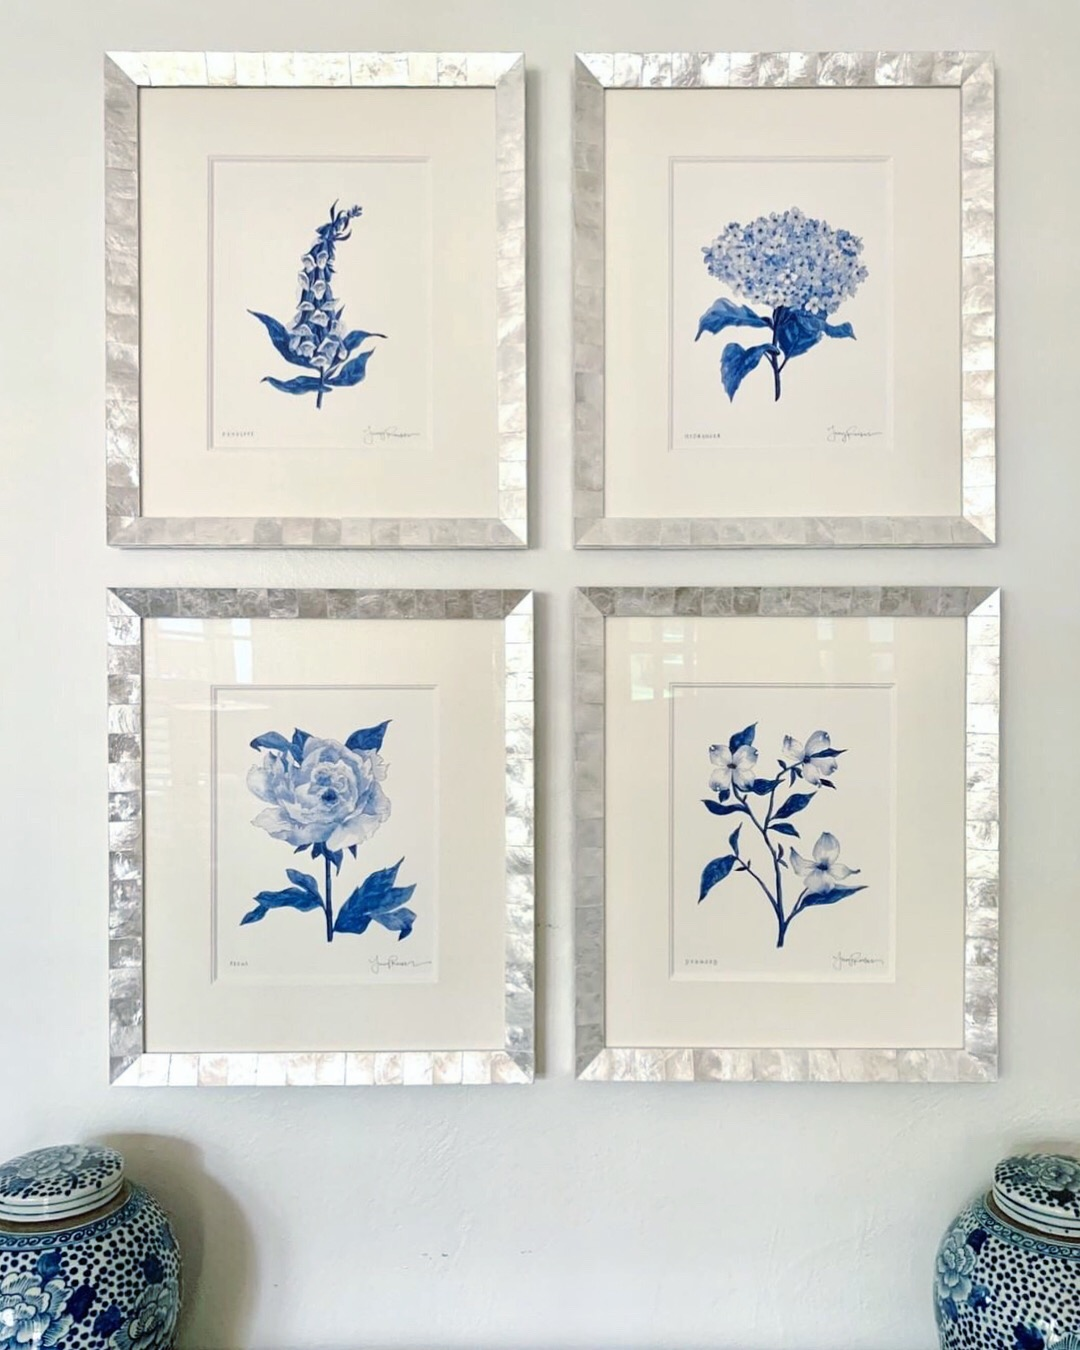 A beautiful installation of perfectly-framed botanical prints!